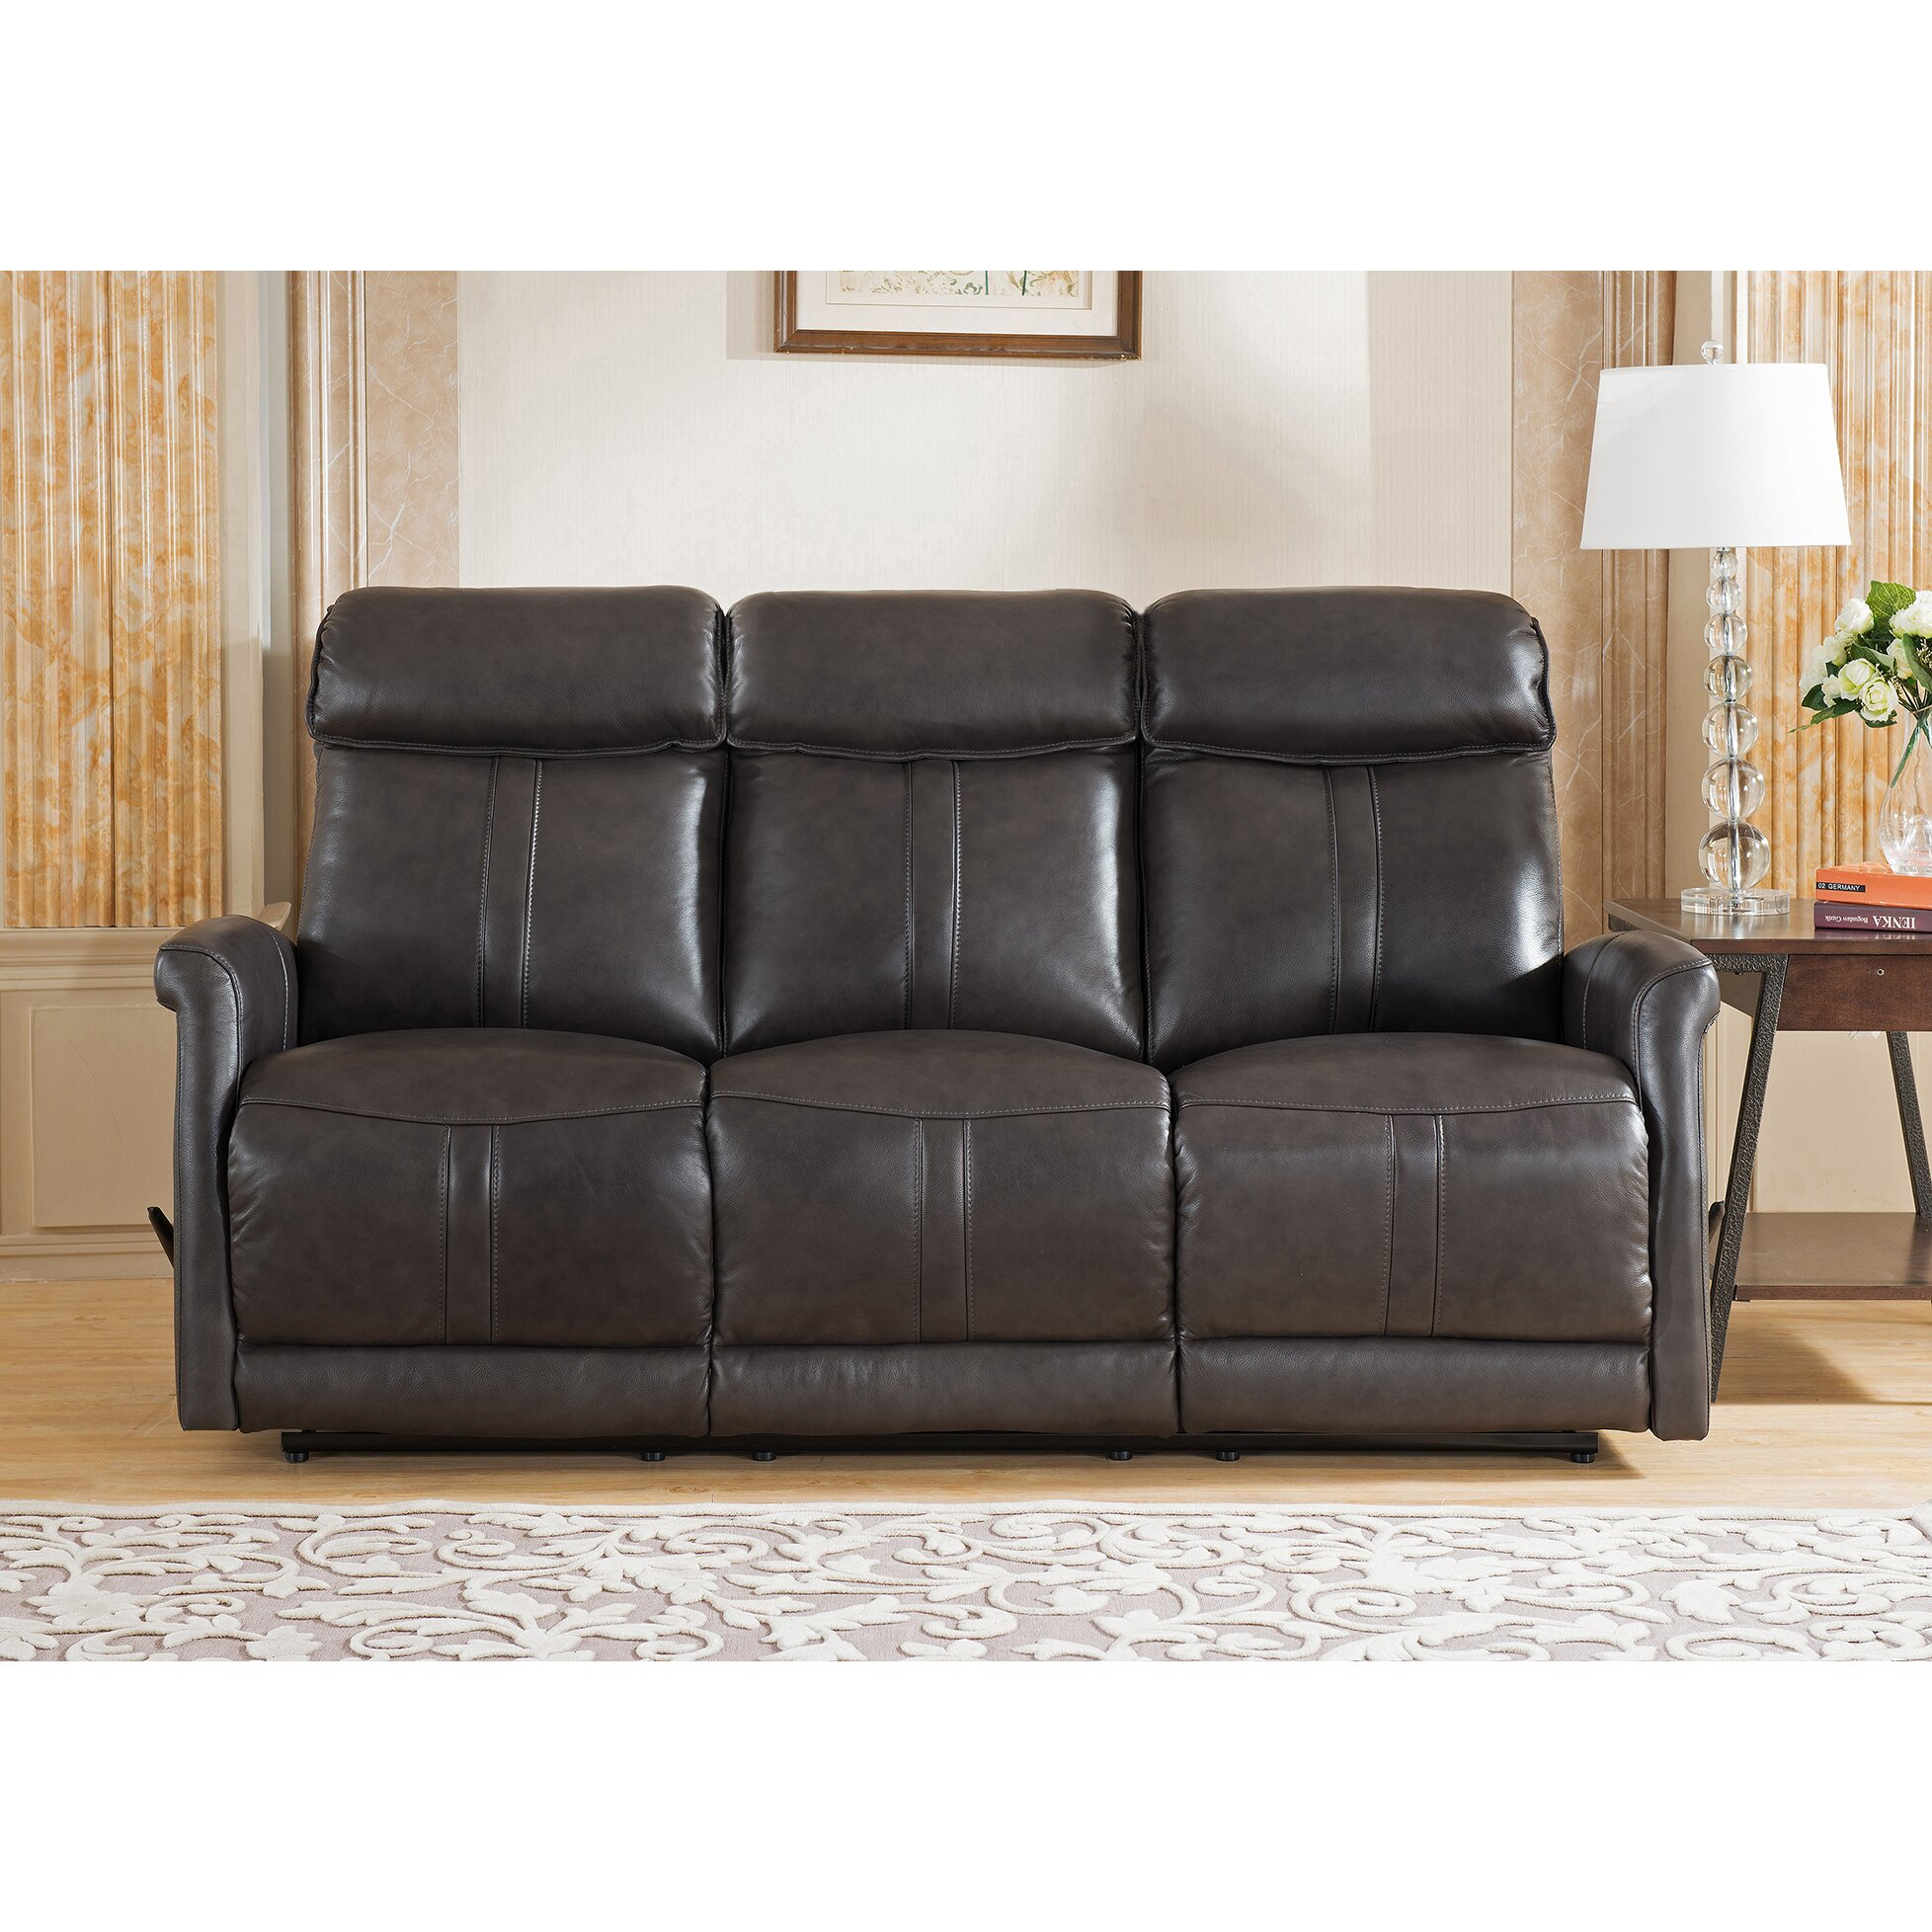 Amax Mosby 3 Piece Leather Living Room Set Wayfair